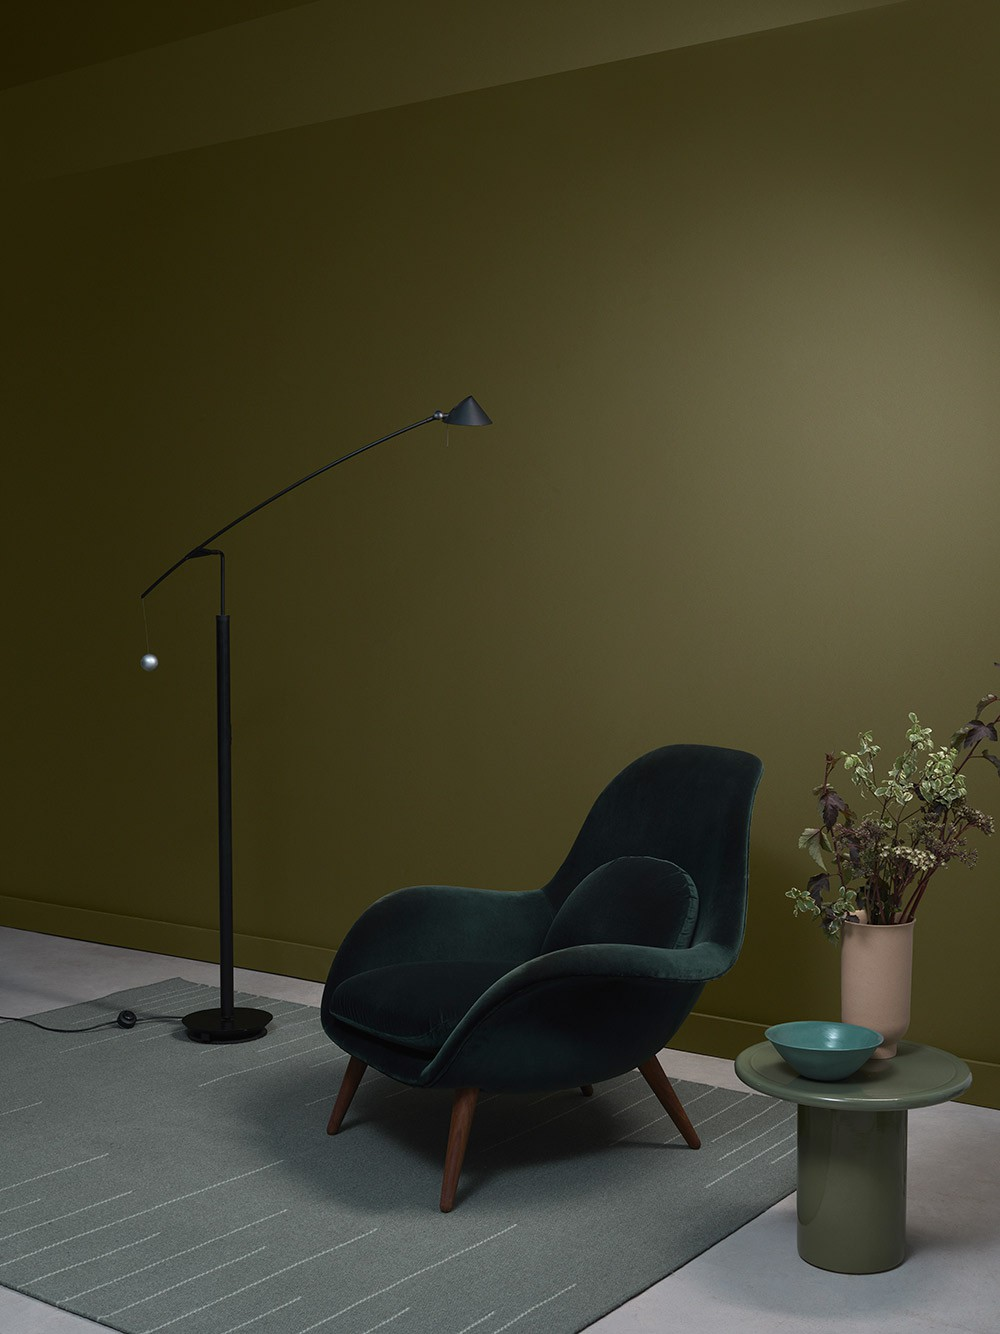 Khaki walls with a chair and a table